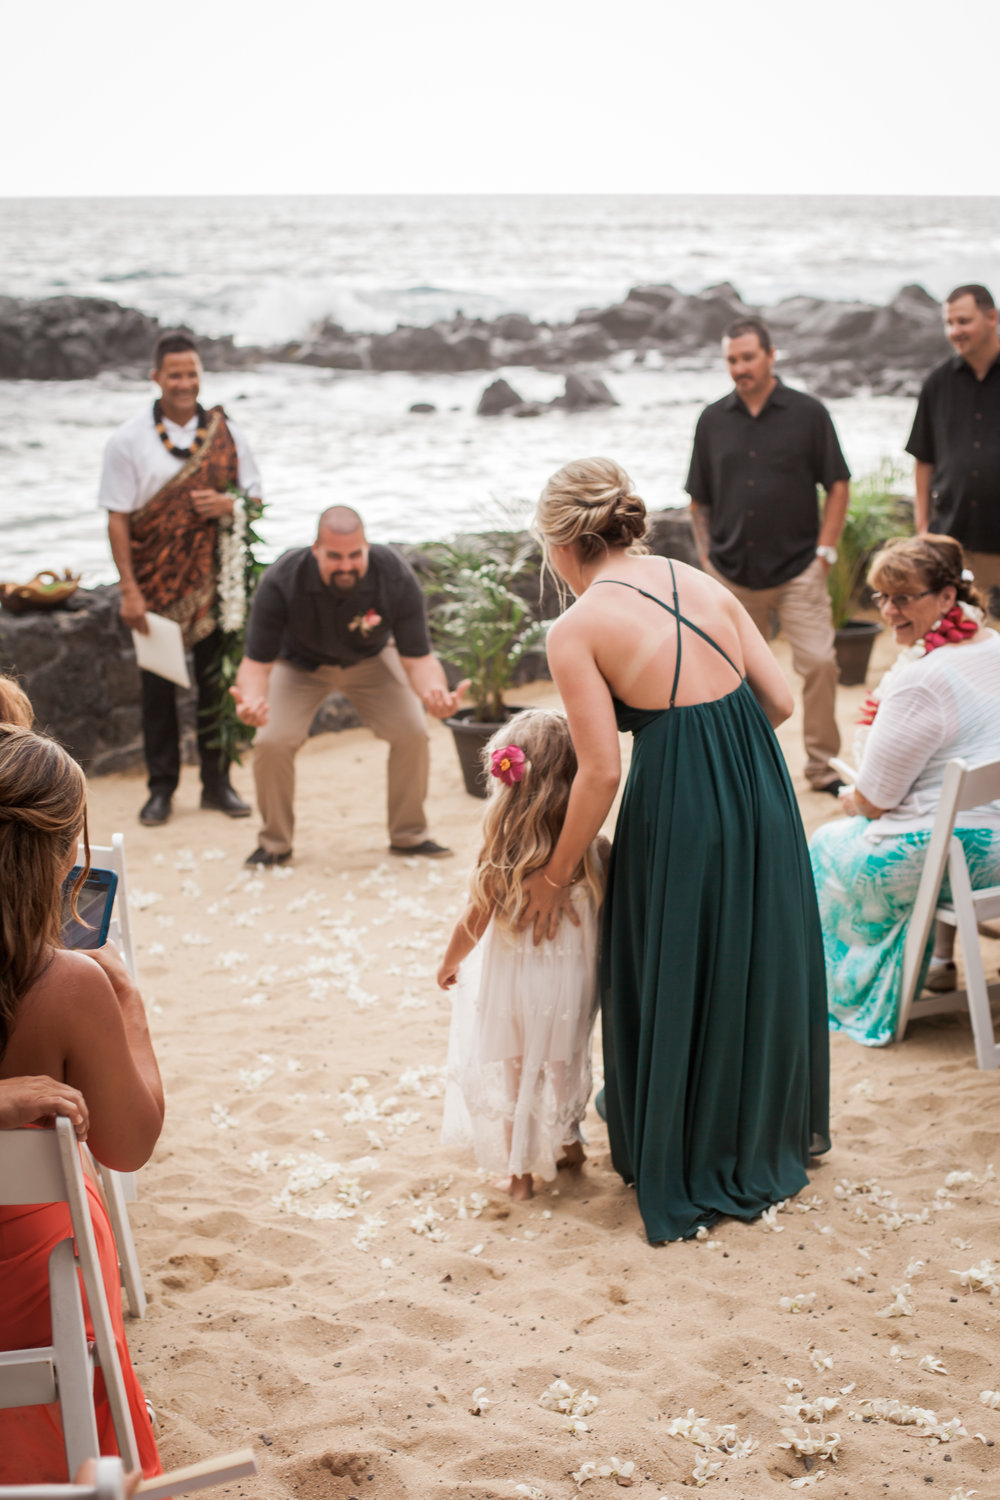 big island hawaii royal kona resort beach wedding © kelilina photography 20170520165105.jpg